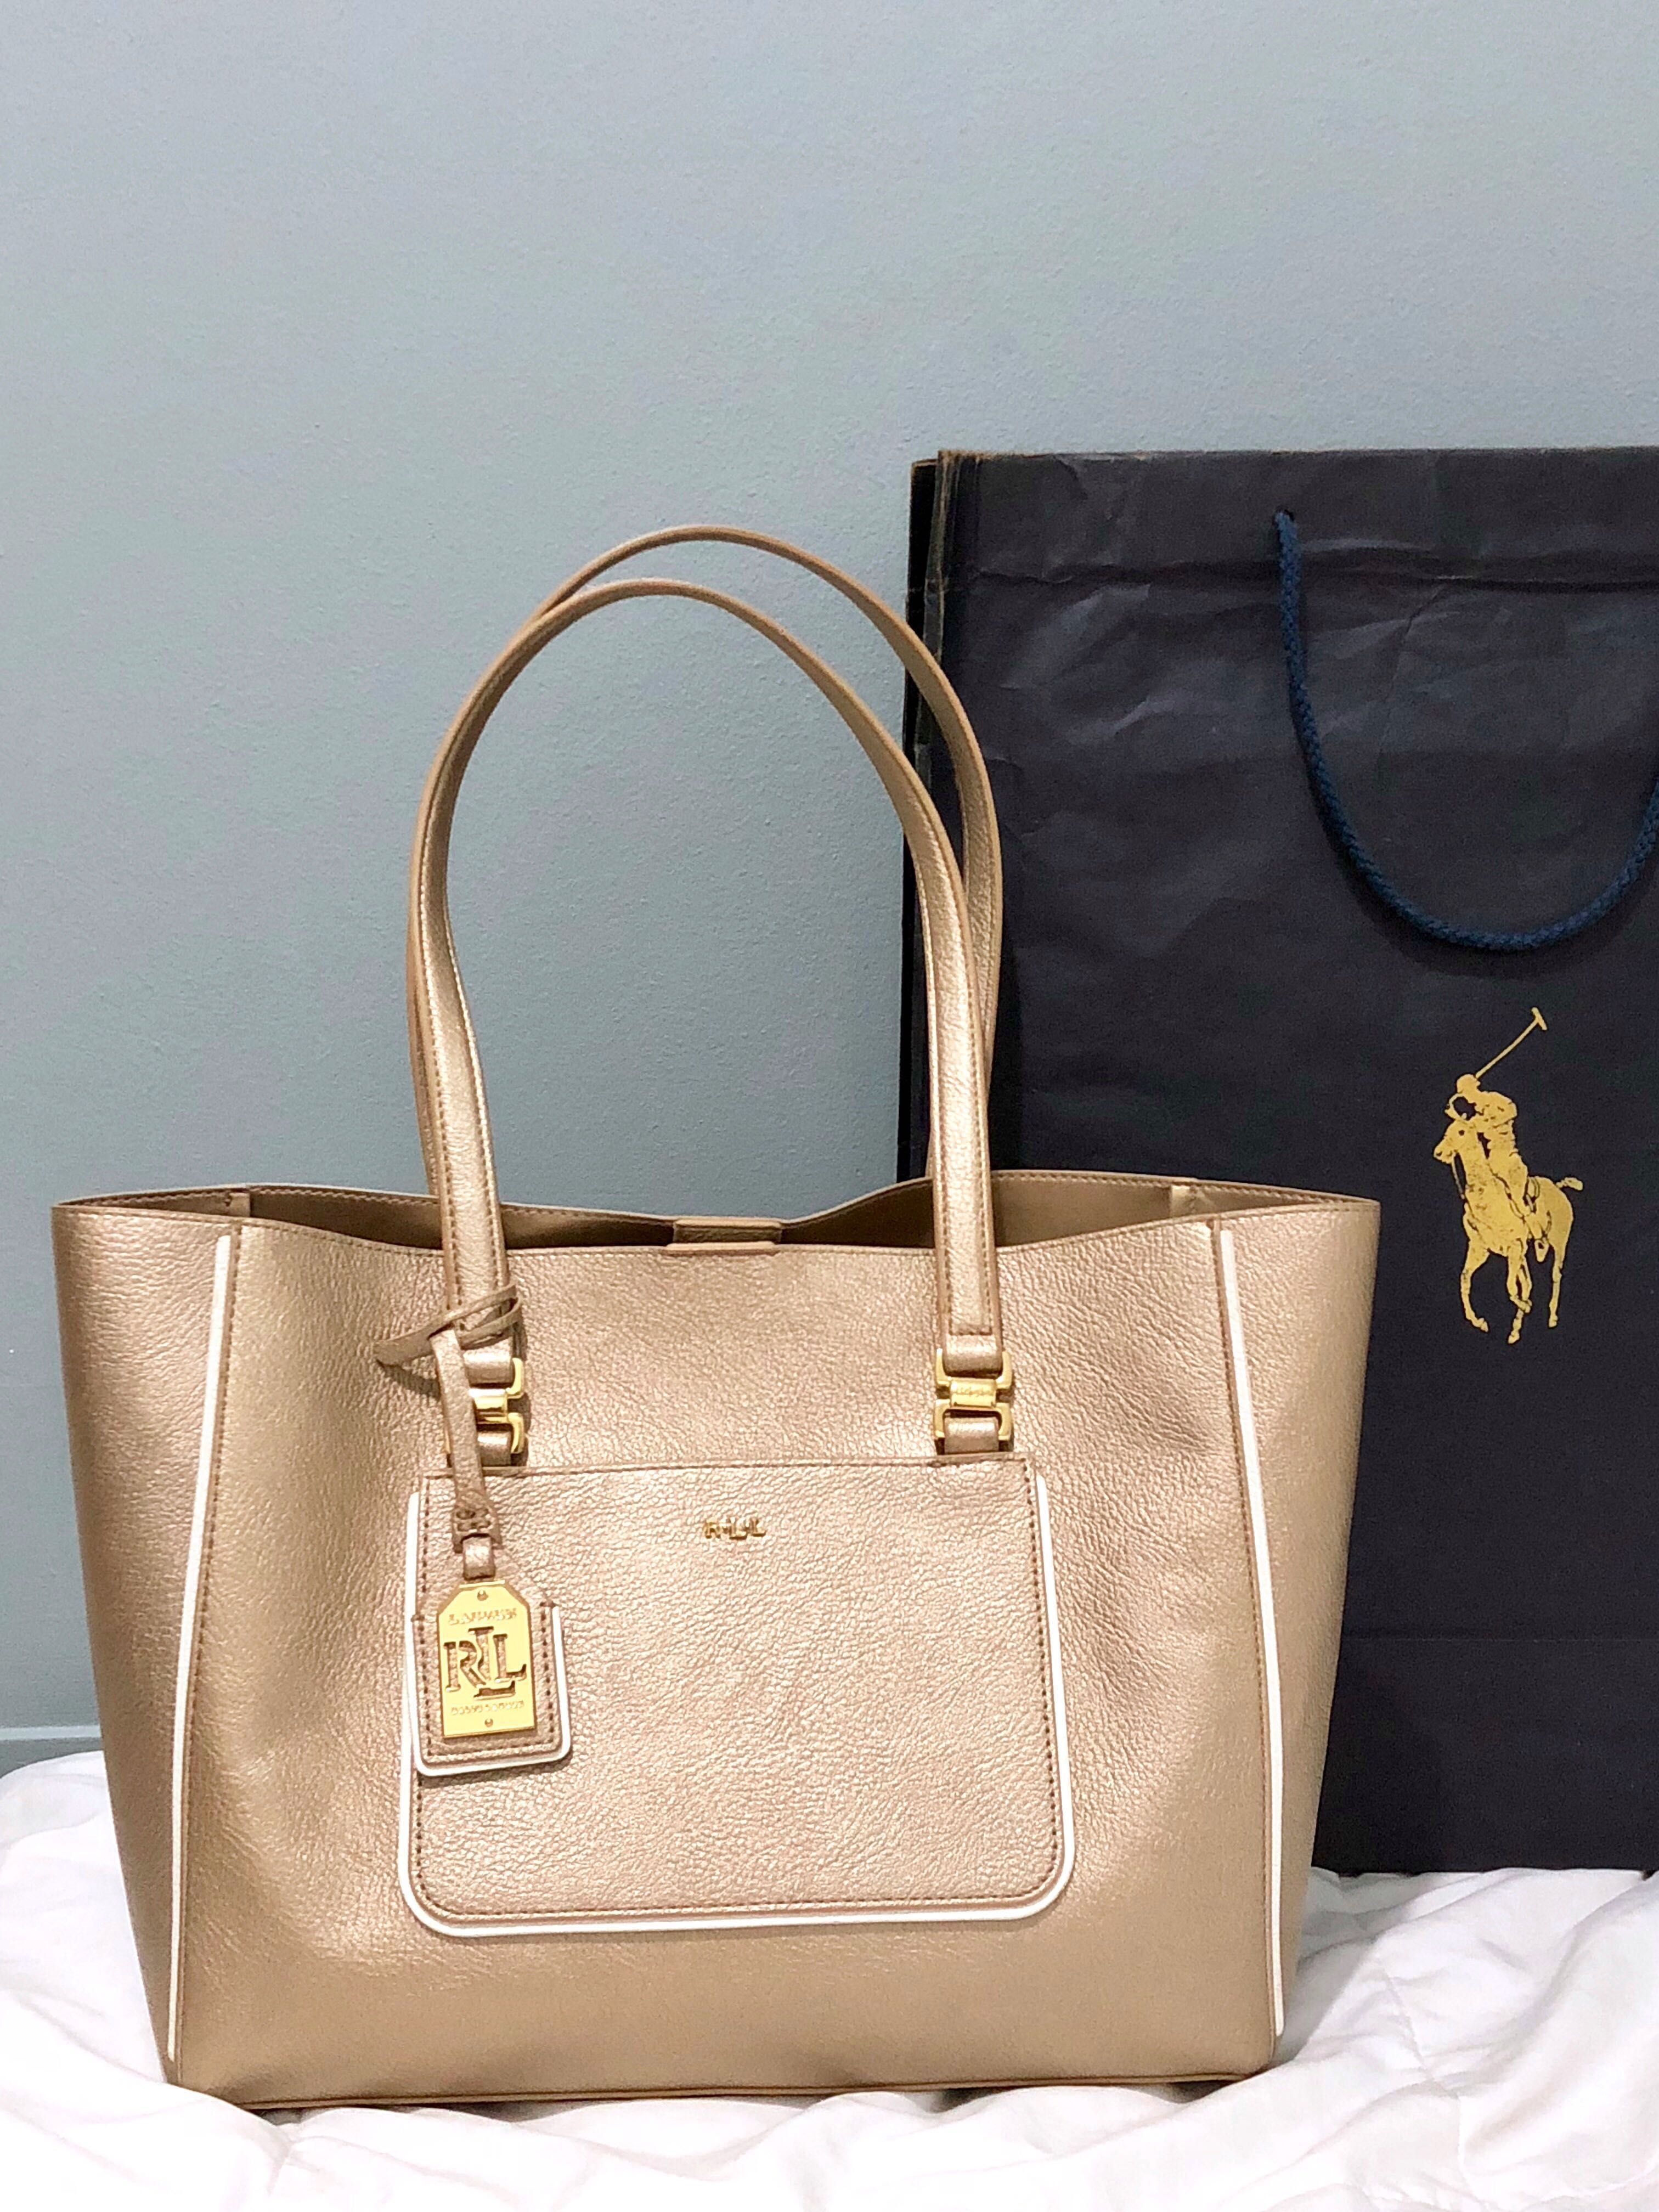 ... cheap ralph lauren gold leather tote bag womens fashion bags wallets on  carousell 4462f 2617a 07dbe584df